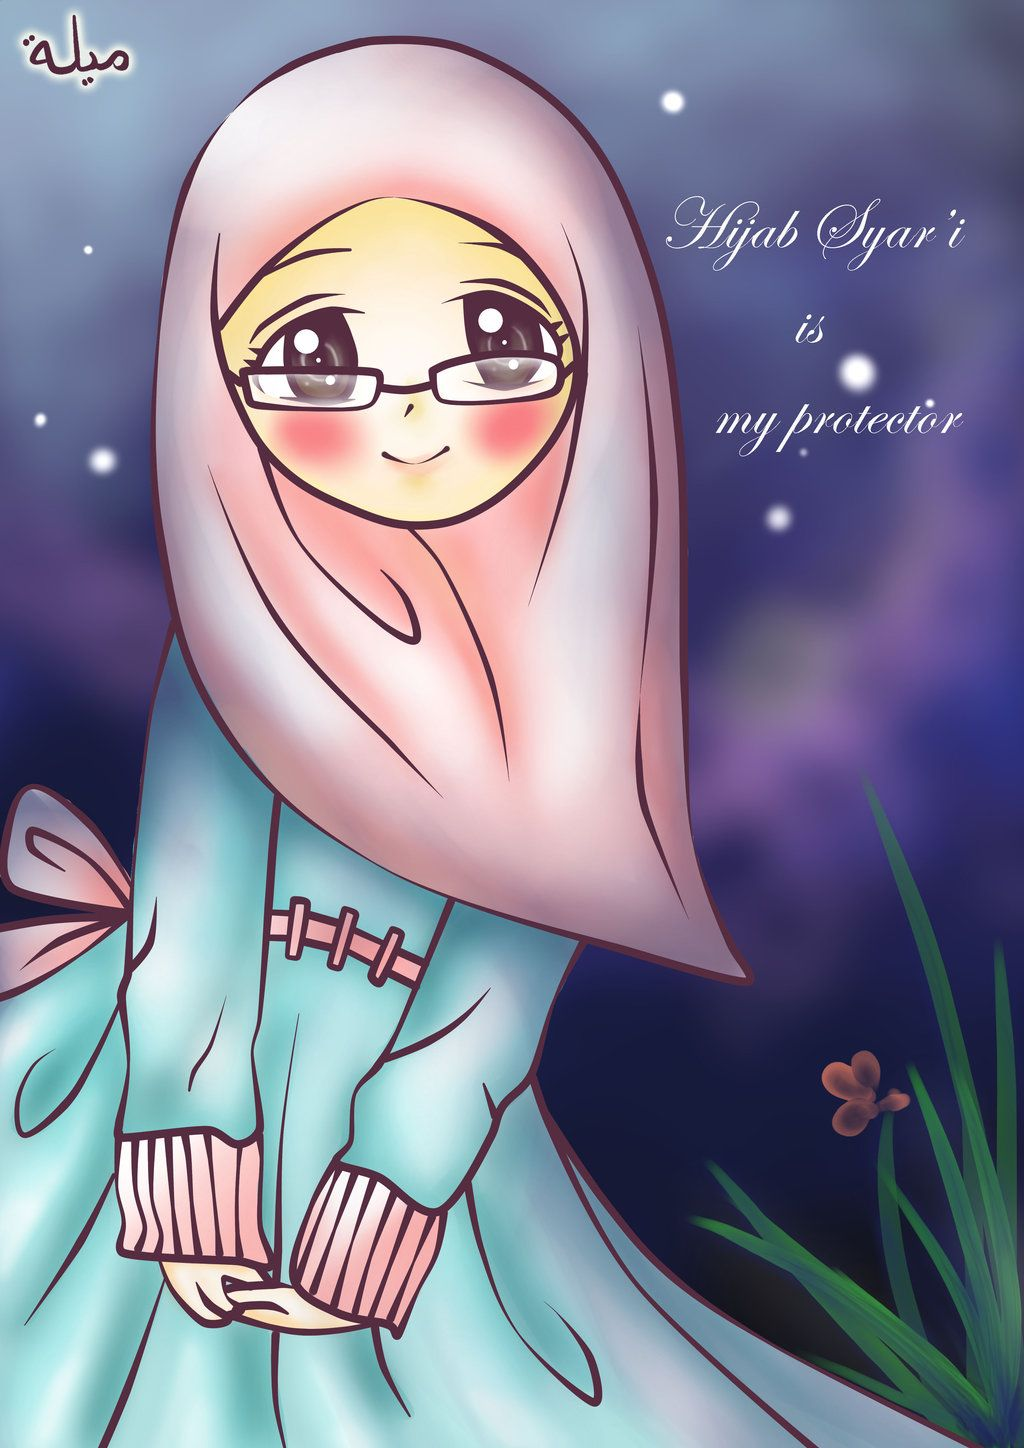 Hijab And Me By BidadariSurgadeviantartcom On DeviantArt